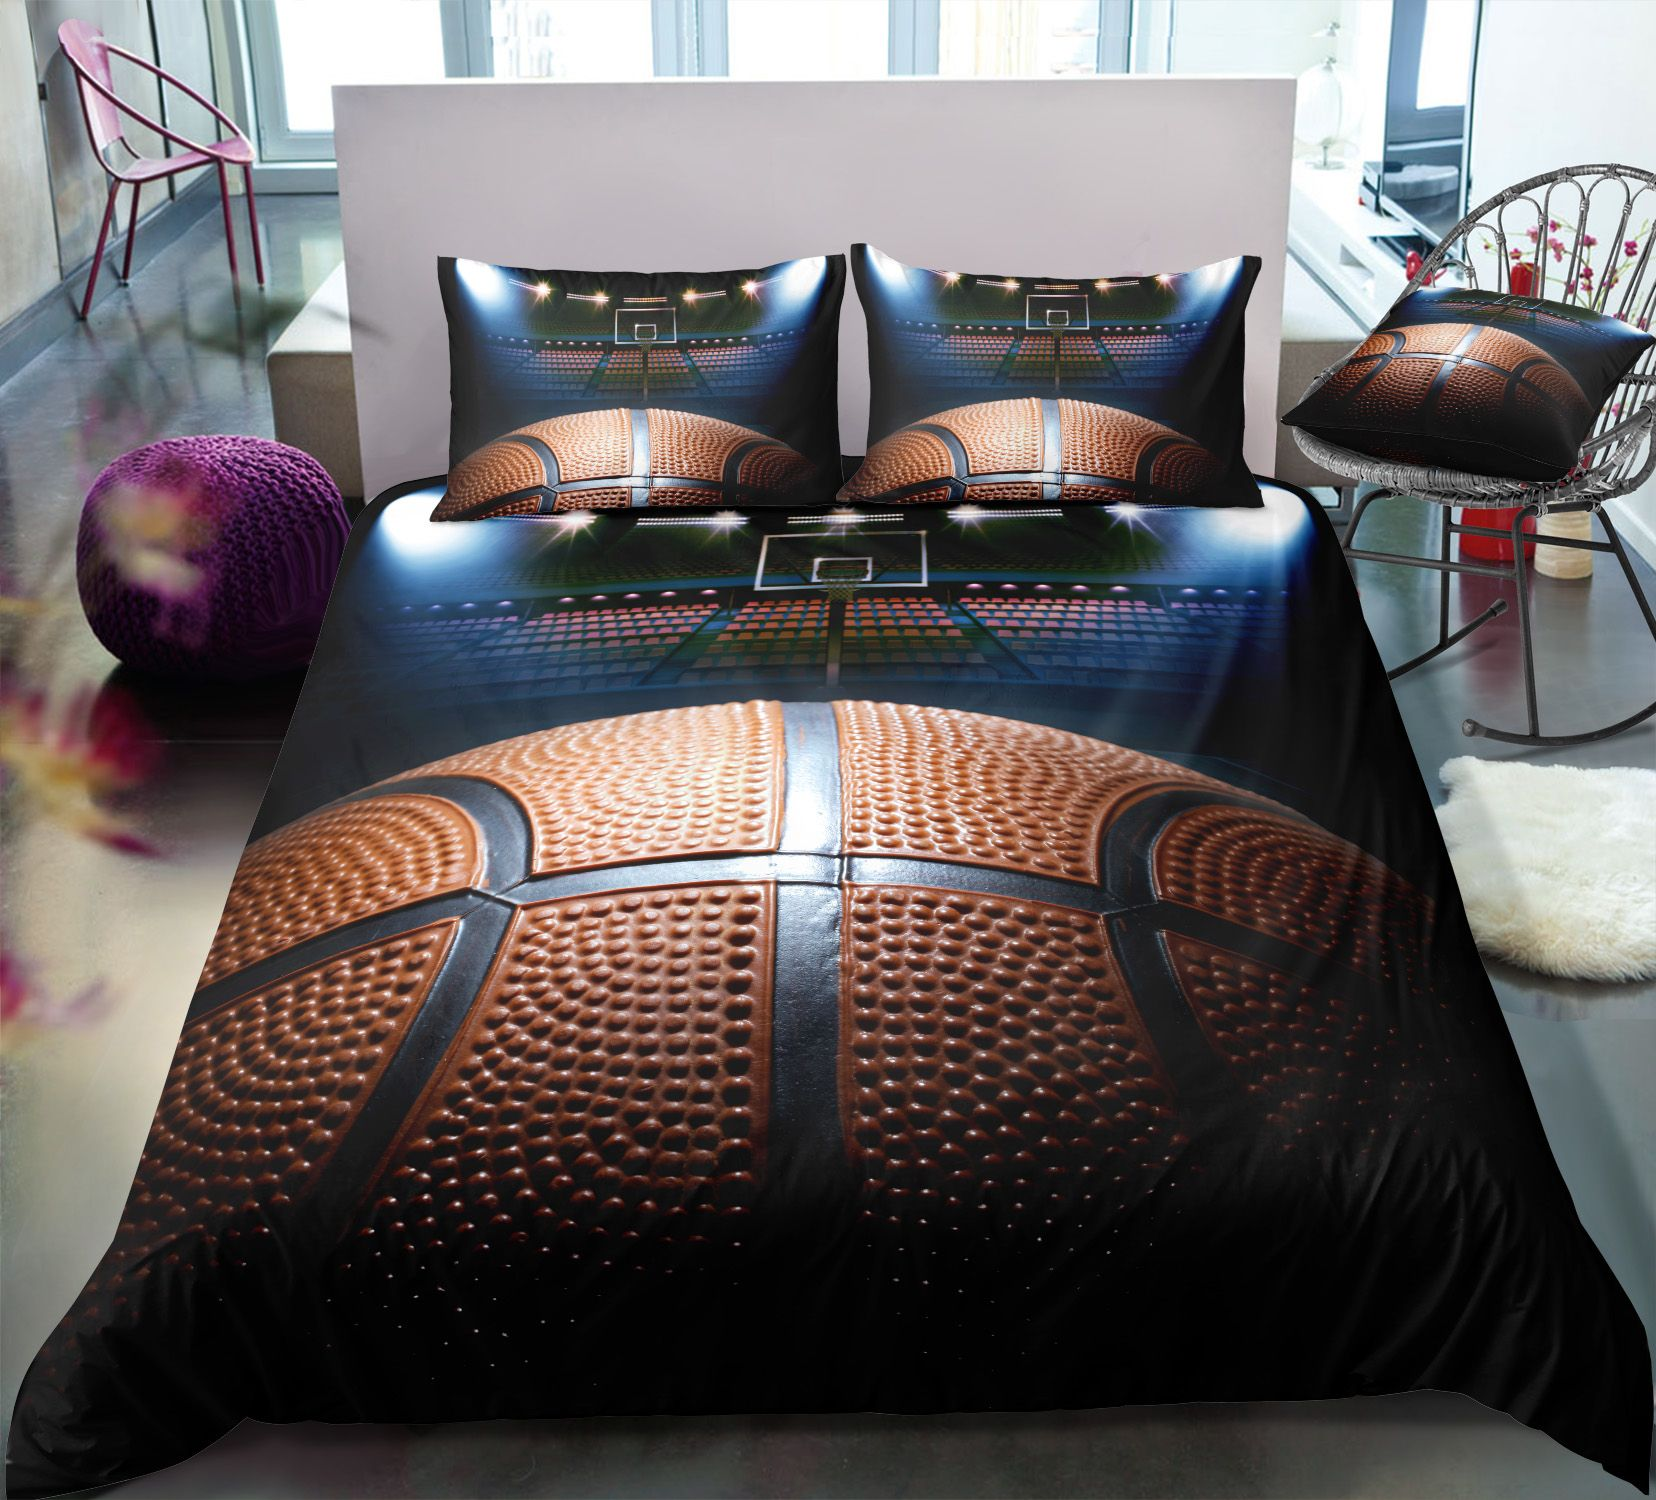 Baketball Printed Blanket for Boy Thin Flannel Simple Cool